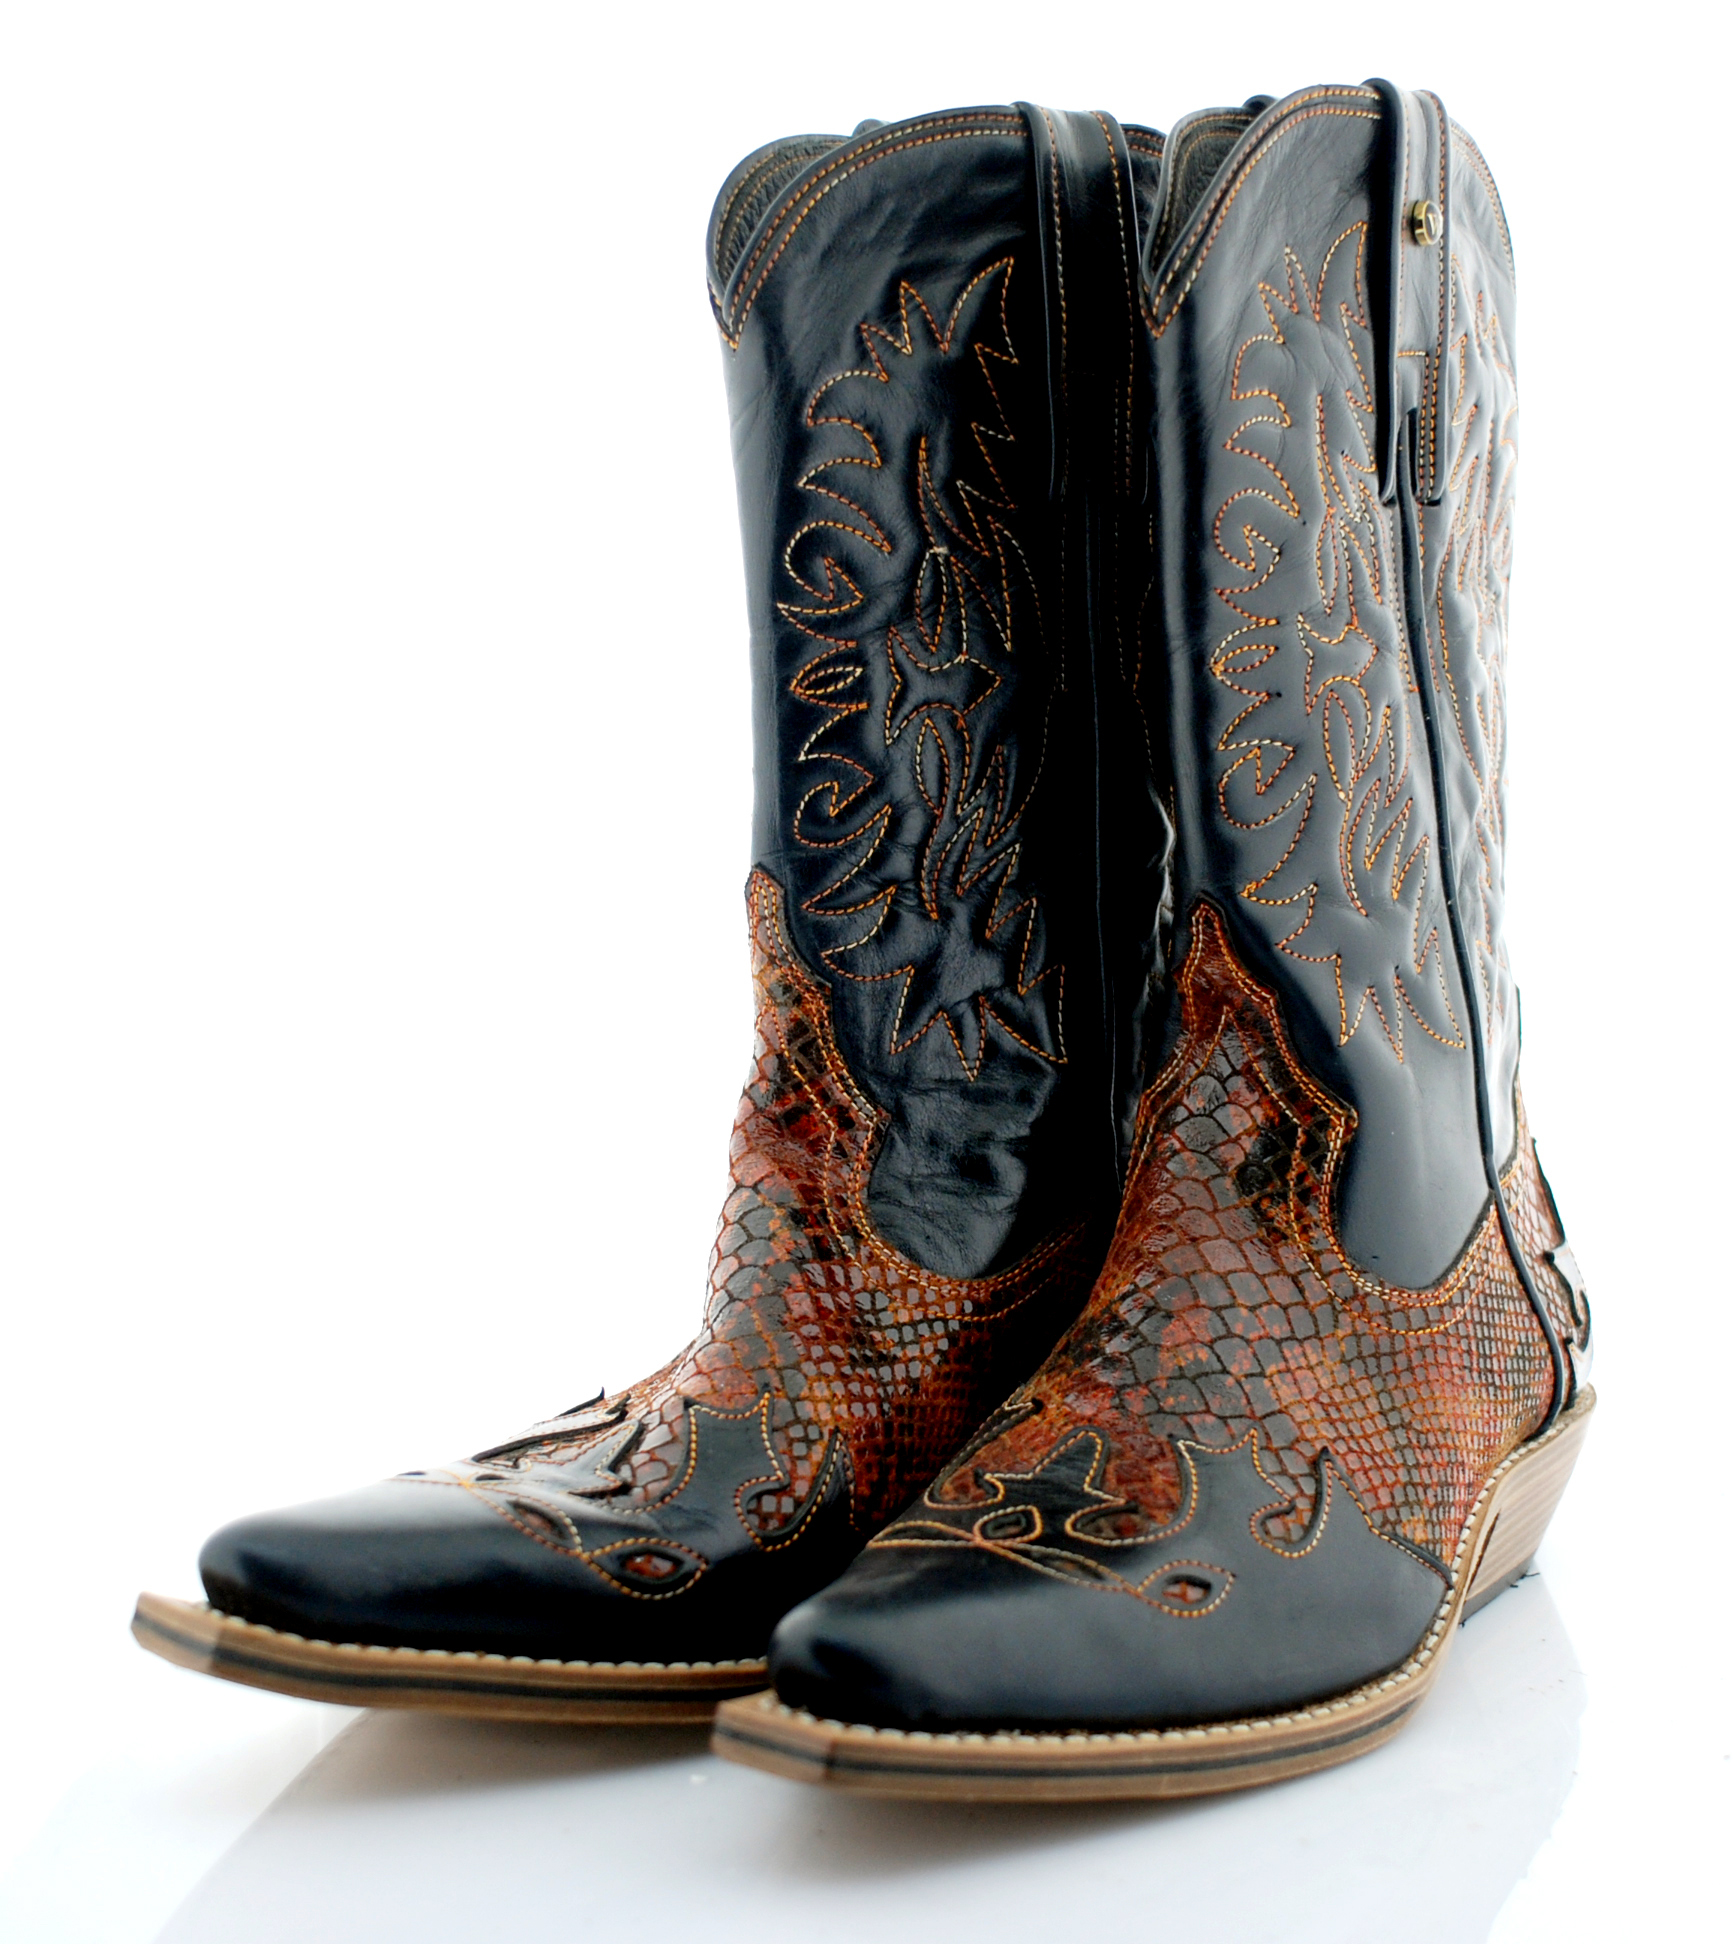 465e95fe326 √ Classic Cowboy Unisex Handmade Riders Boots Sales On Now ...